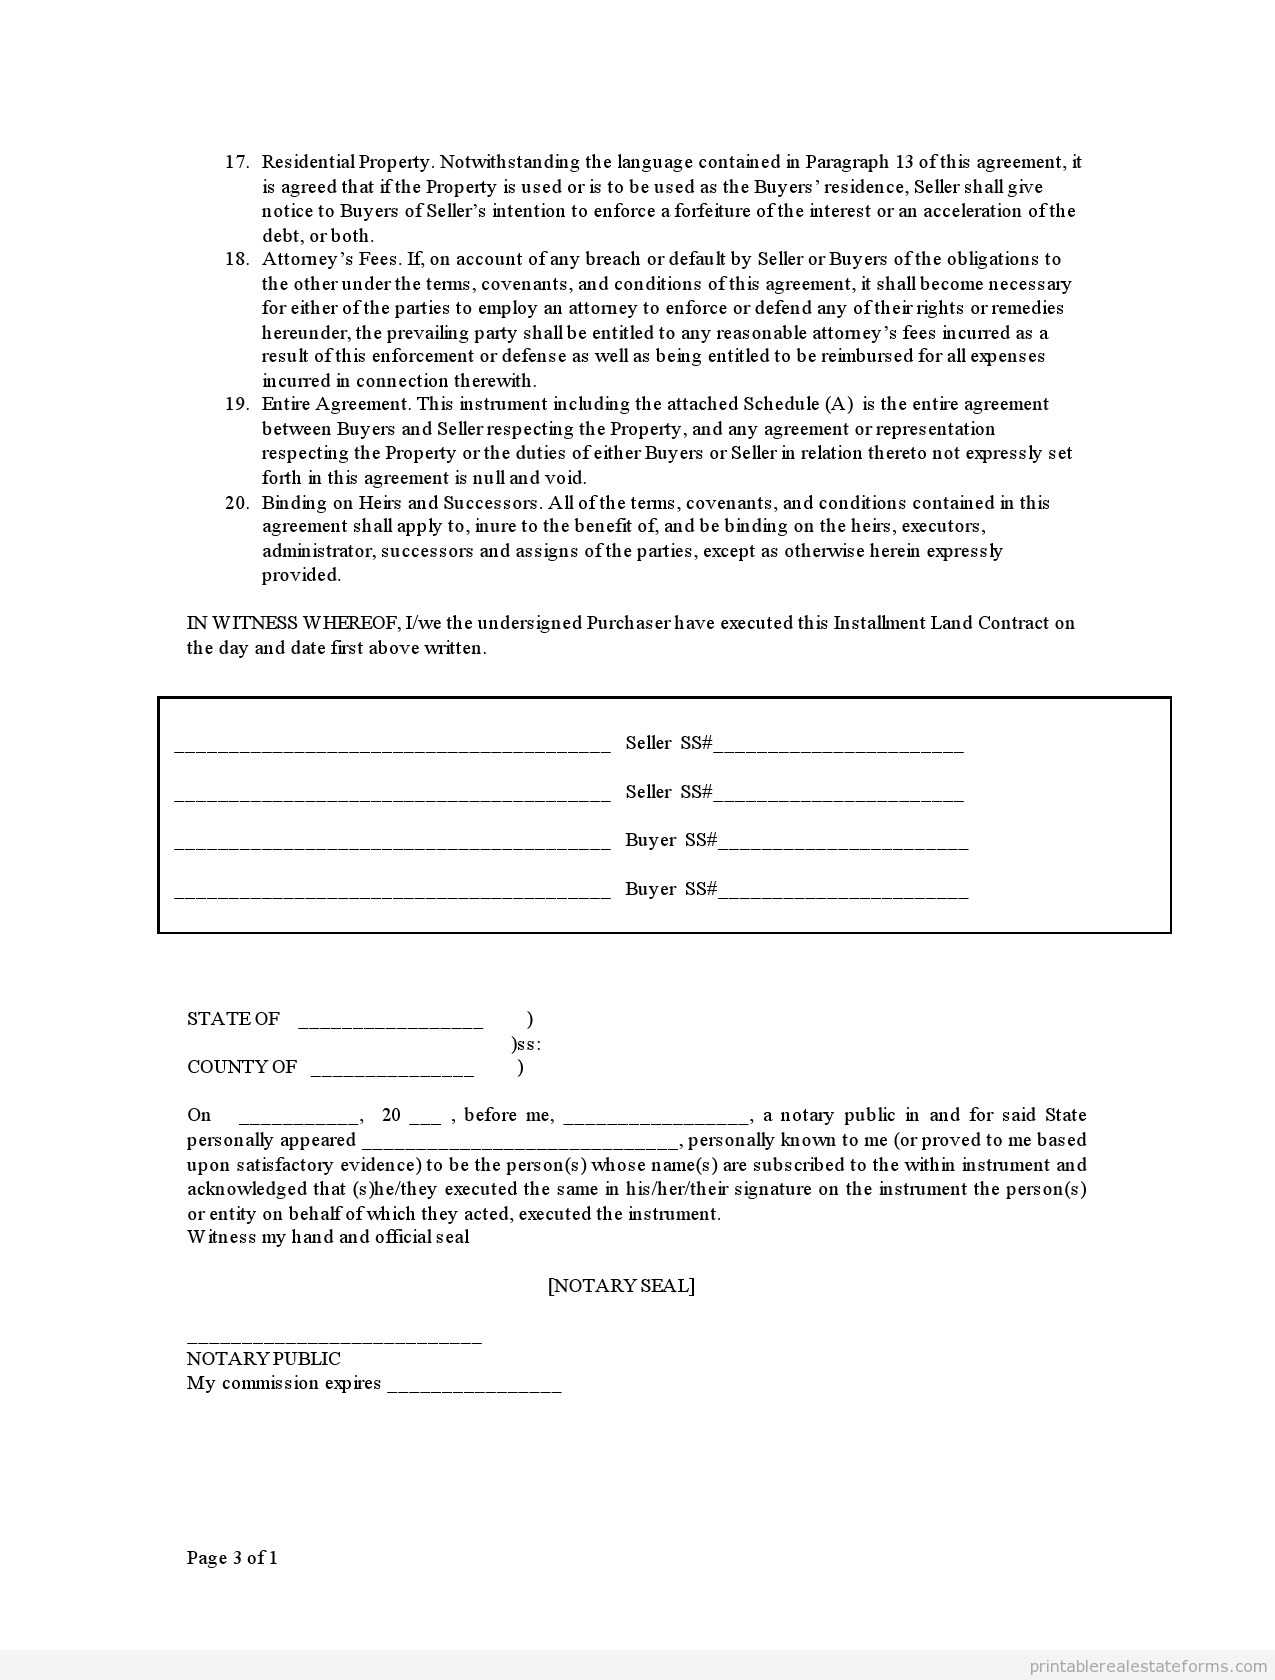 Sample Printable Contract For Deed Form  Printable Real Estate